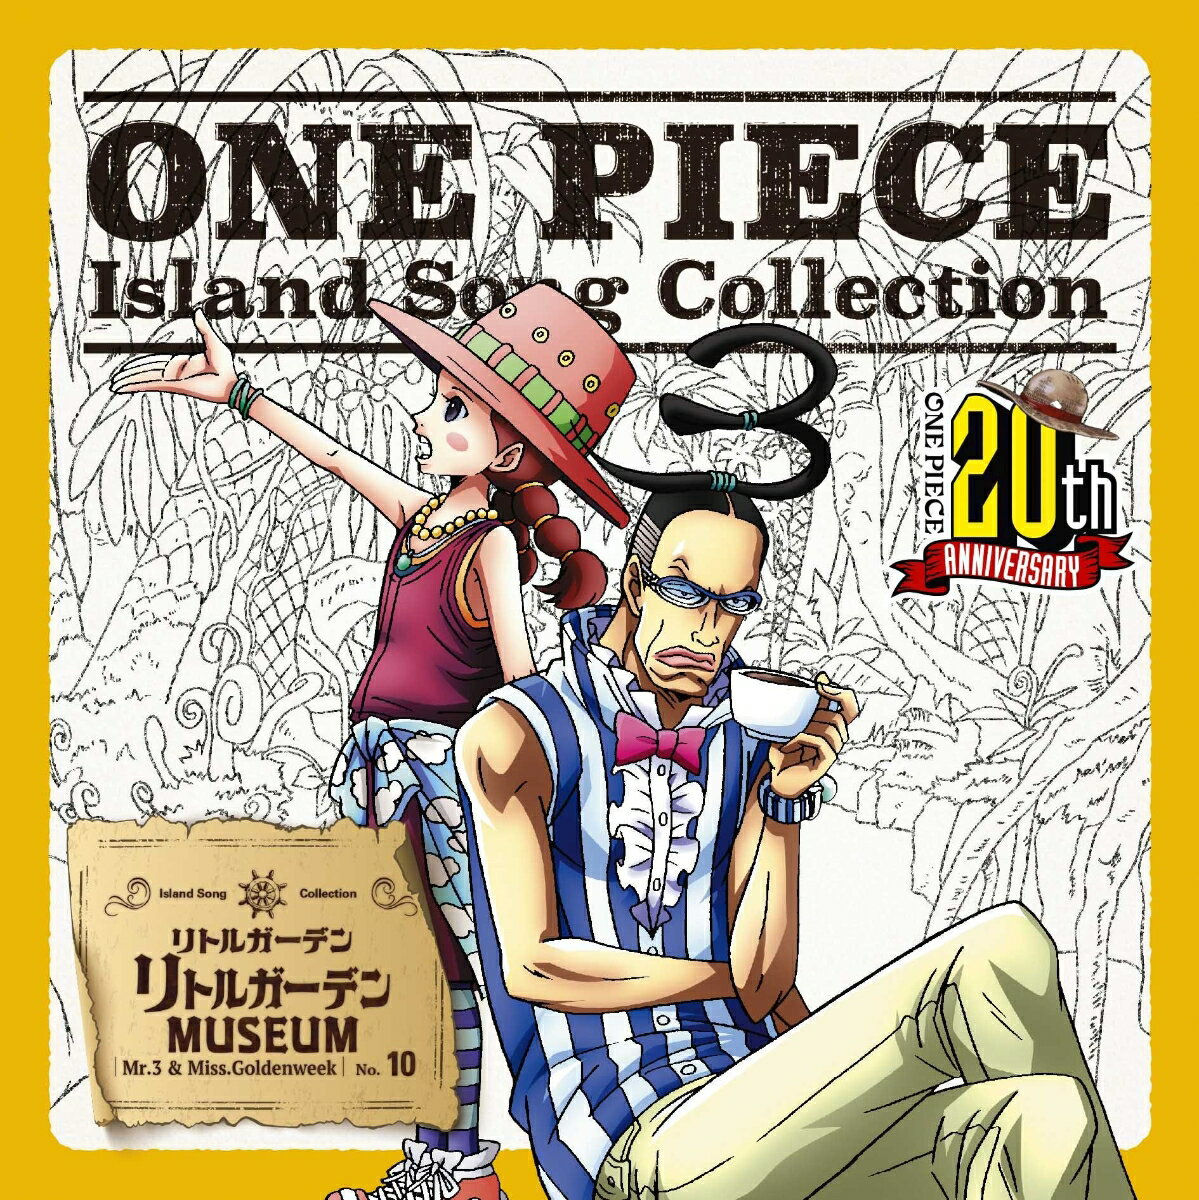 ONE PIECE Island Song Collection リトルガーデン「リトルガーデン MUSEUM」画像